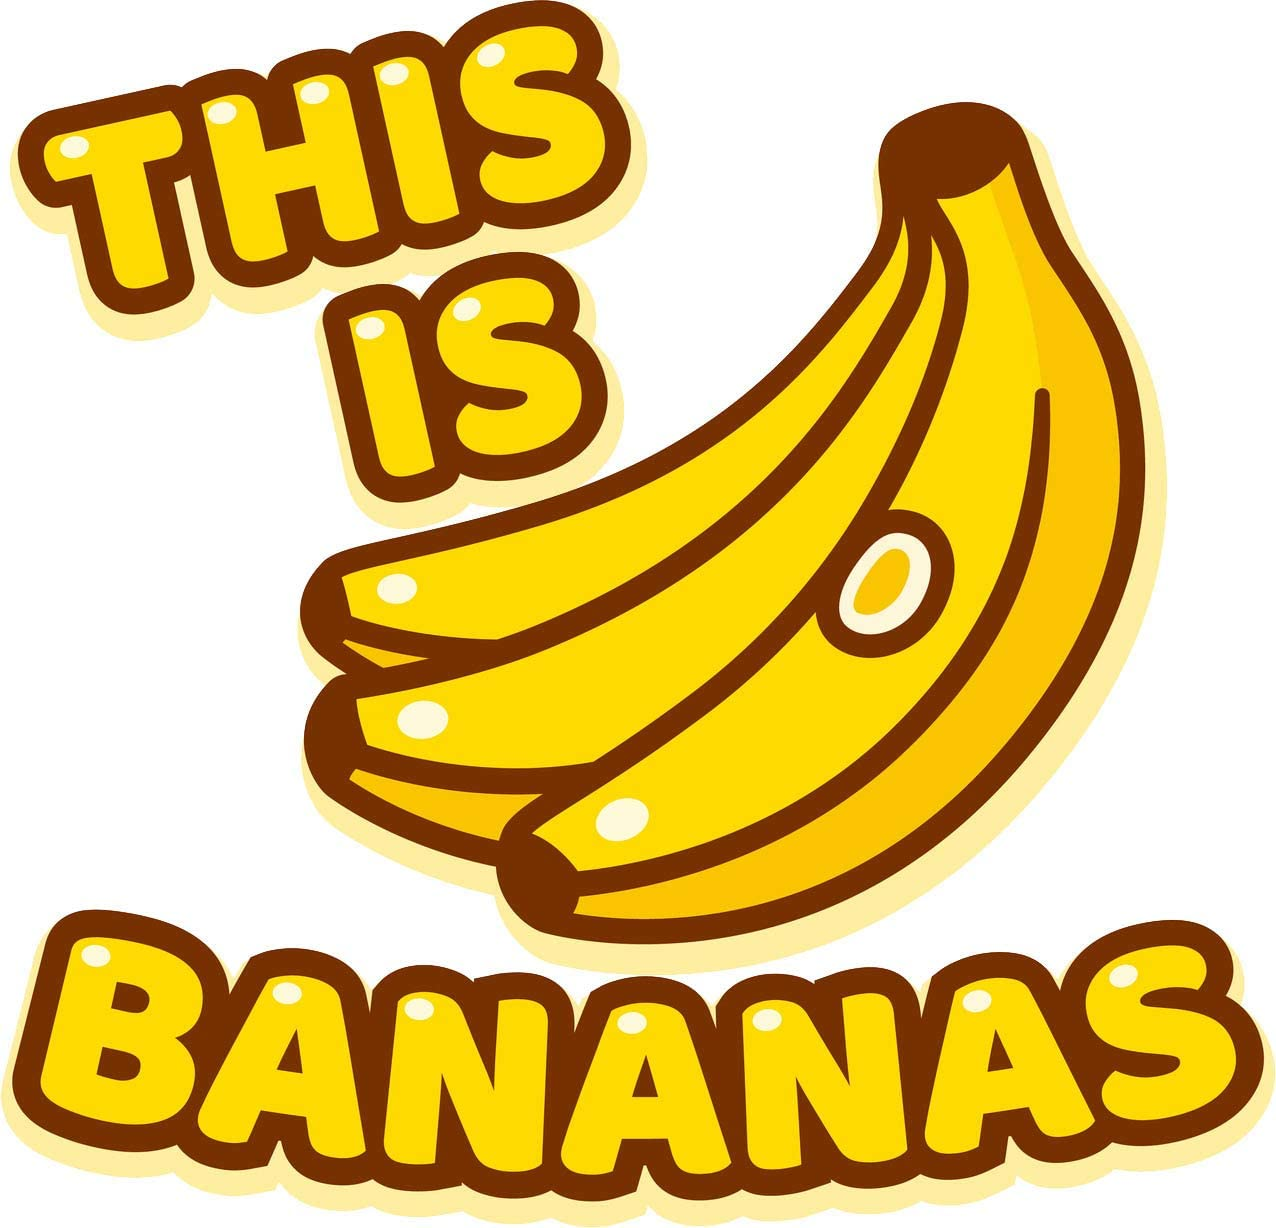 Amazon Com This Is Bananas Saying With Cartoon Drawing Of Banana Bunch Design Vinyl Sticker 4 Tall Automotive Pick any image of a cartoon banana and use it beside other fruit images in a poster design to educate kids on the names of different fruits. banana bunch design vinyl sticker